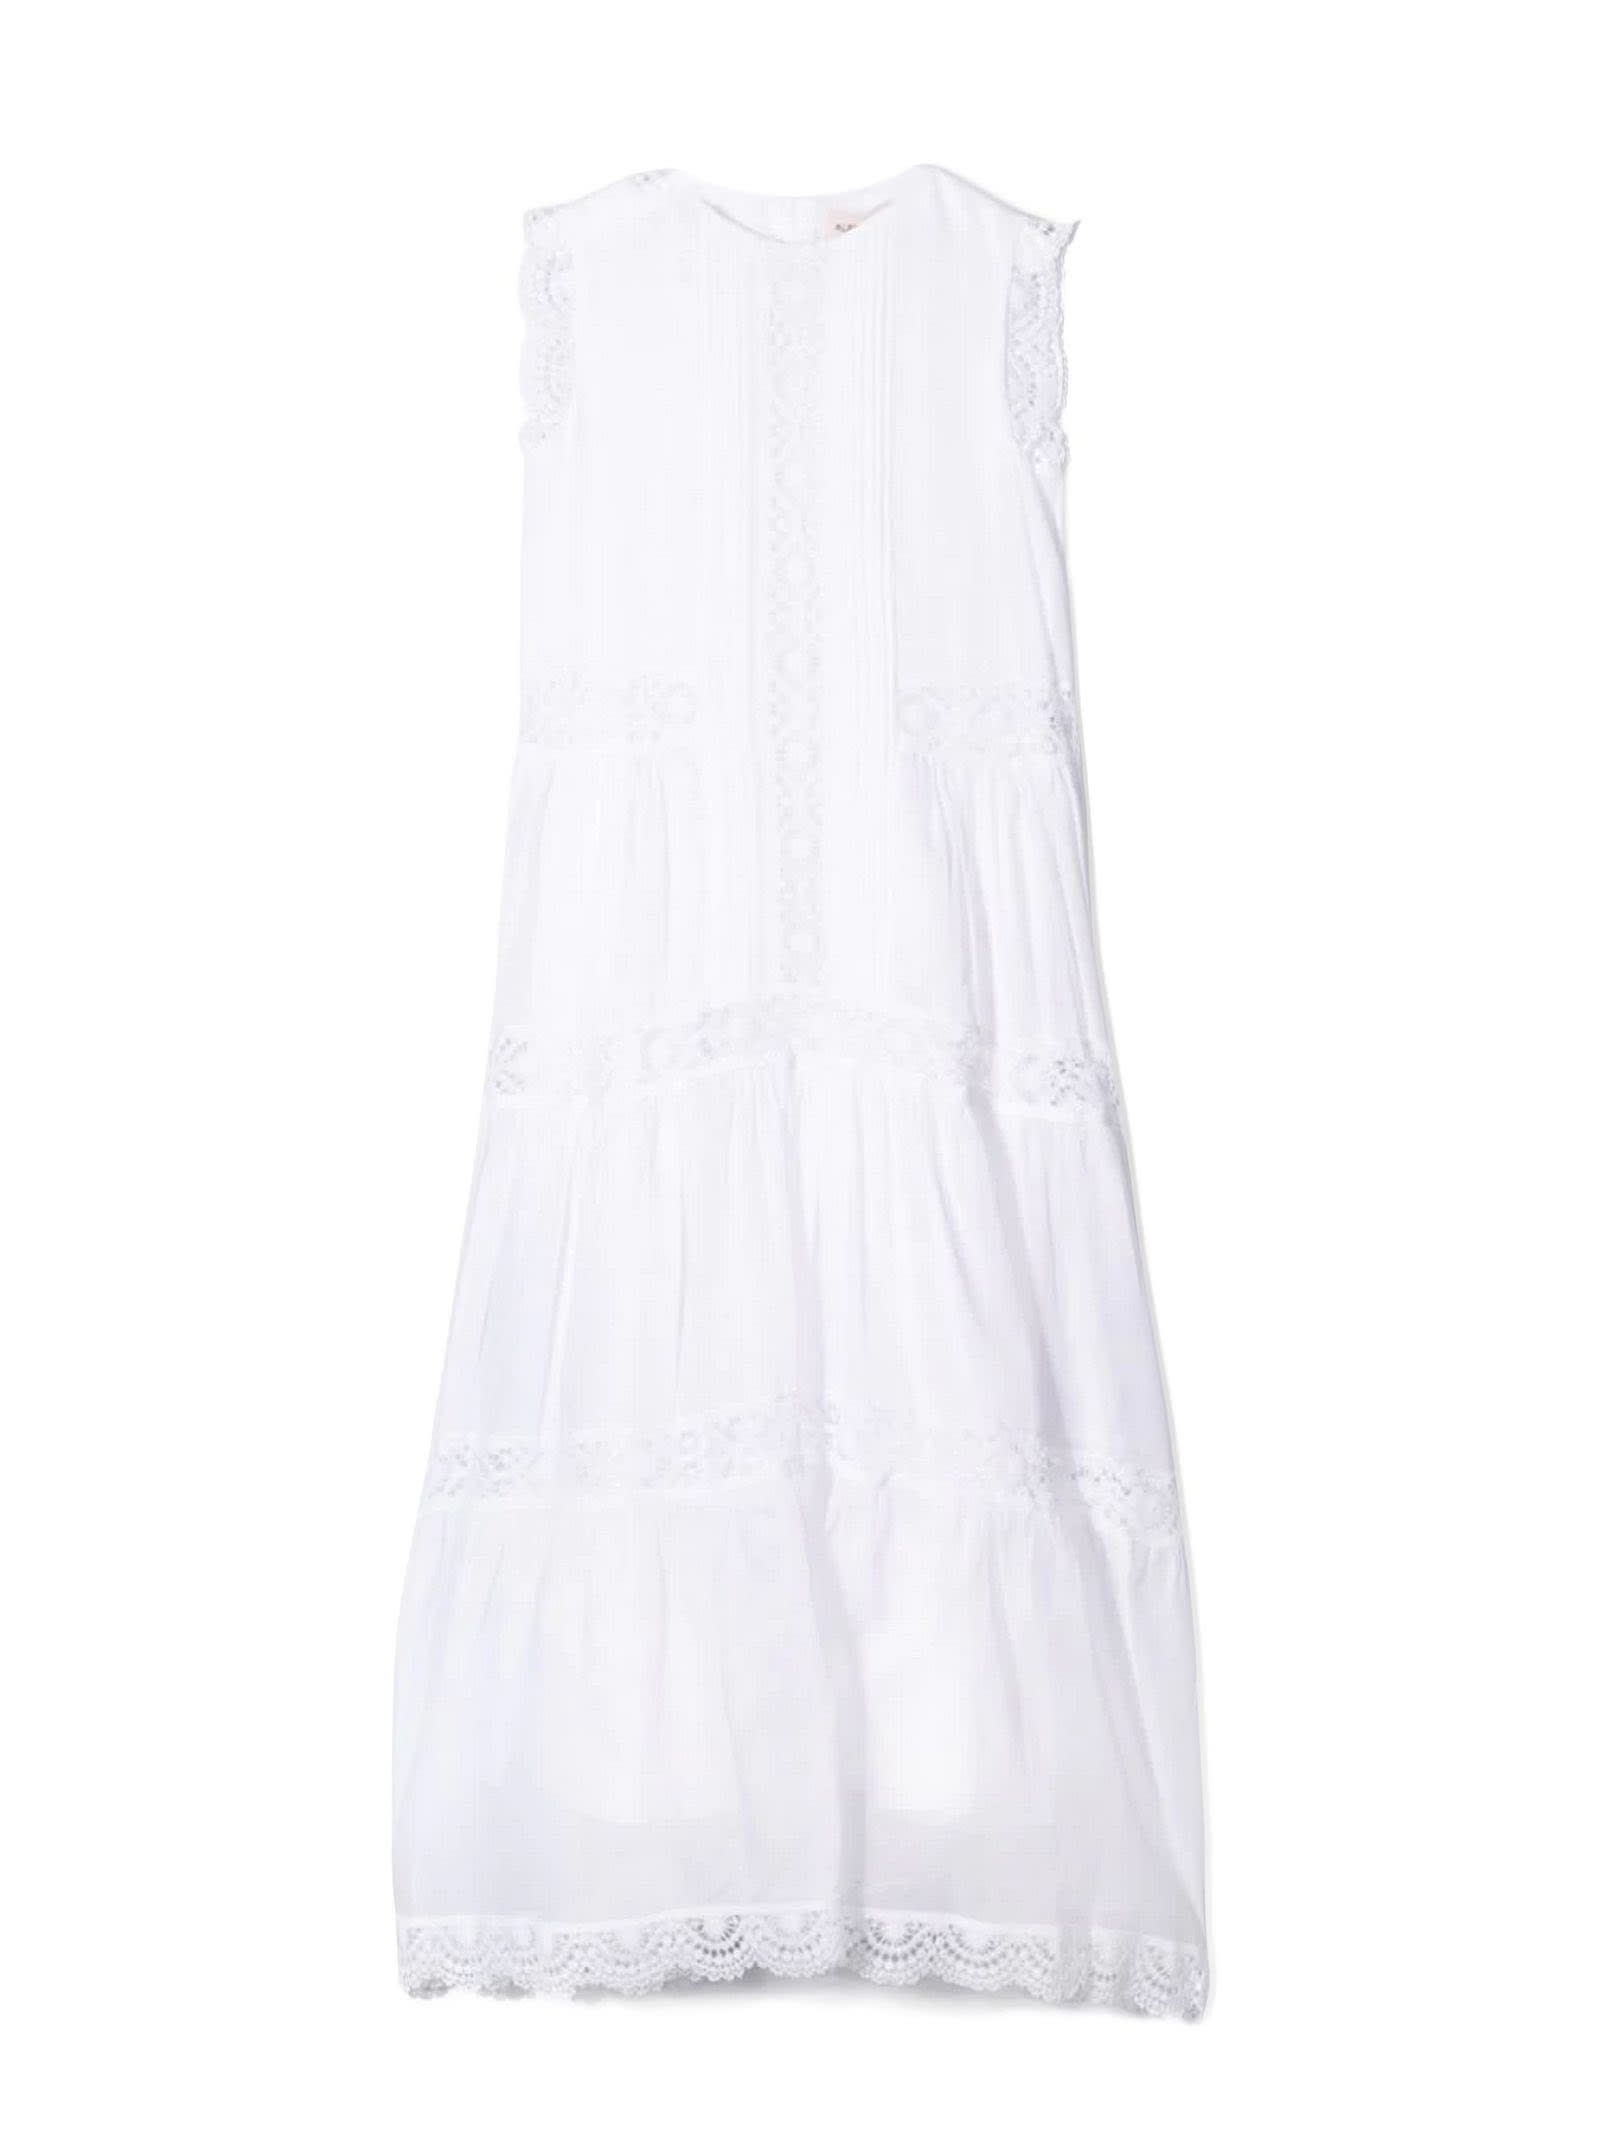 Alberta Ferretti White Cotton Long Dress